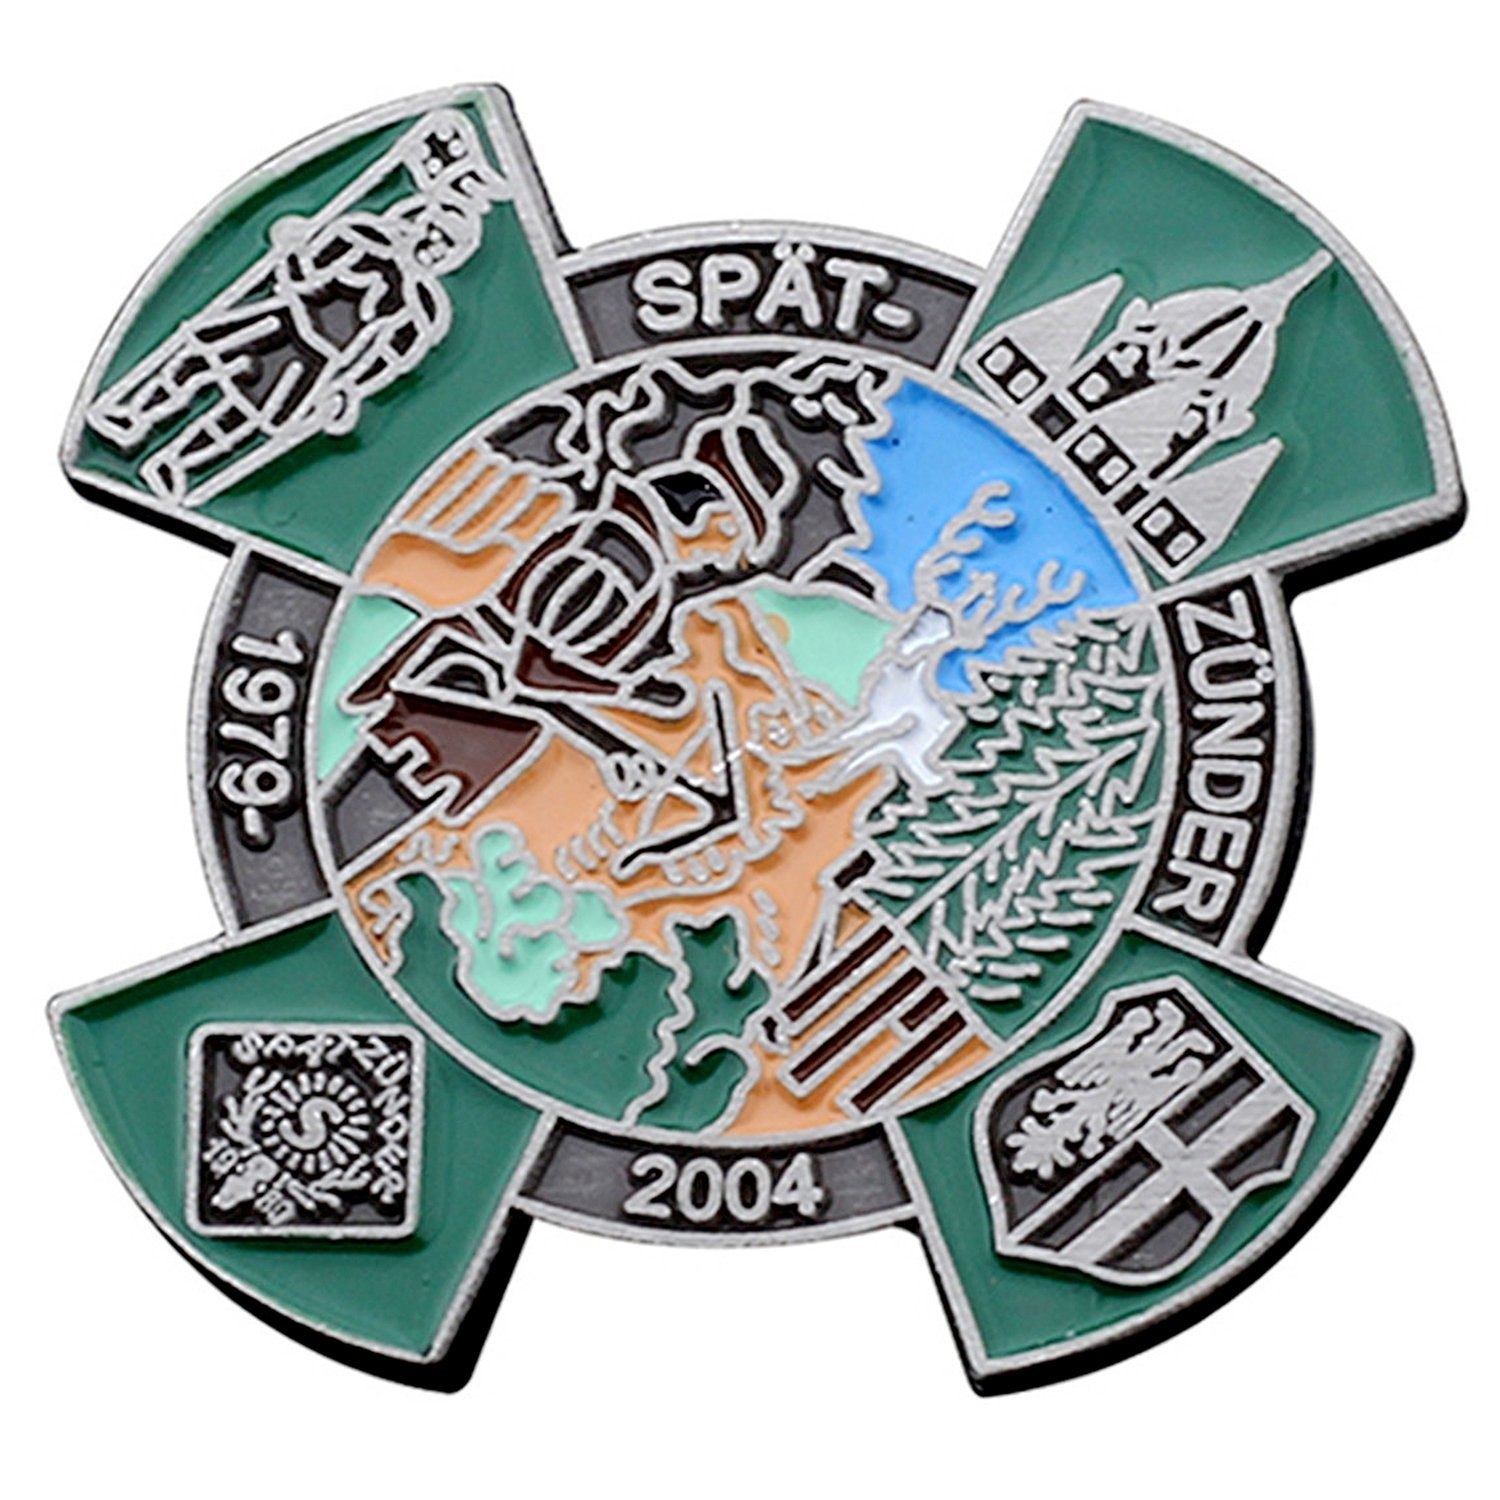 Wholesale Plastic Badge - Buy Reliable Plastic Badge from Plastic